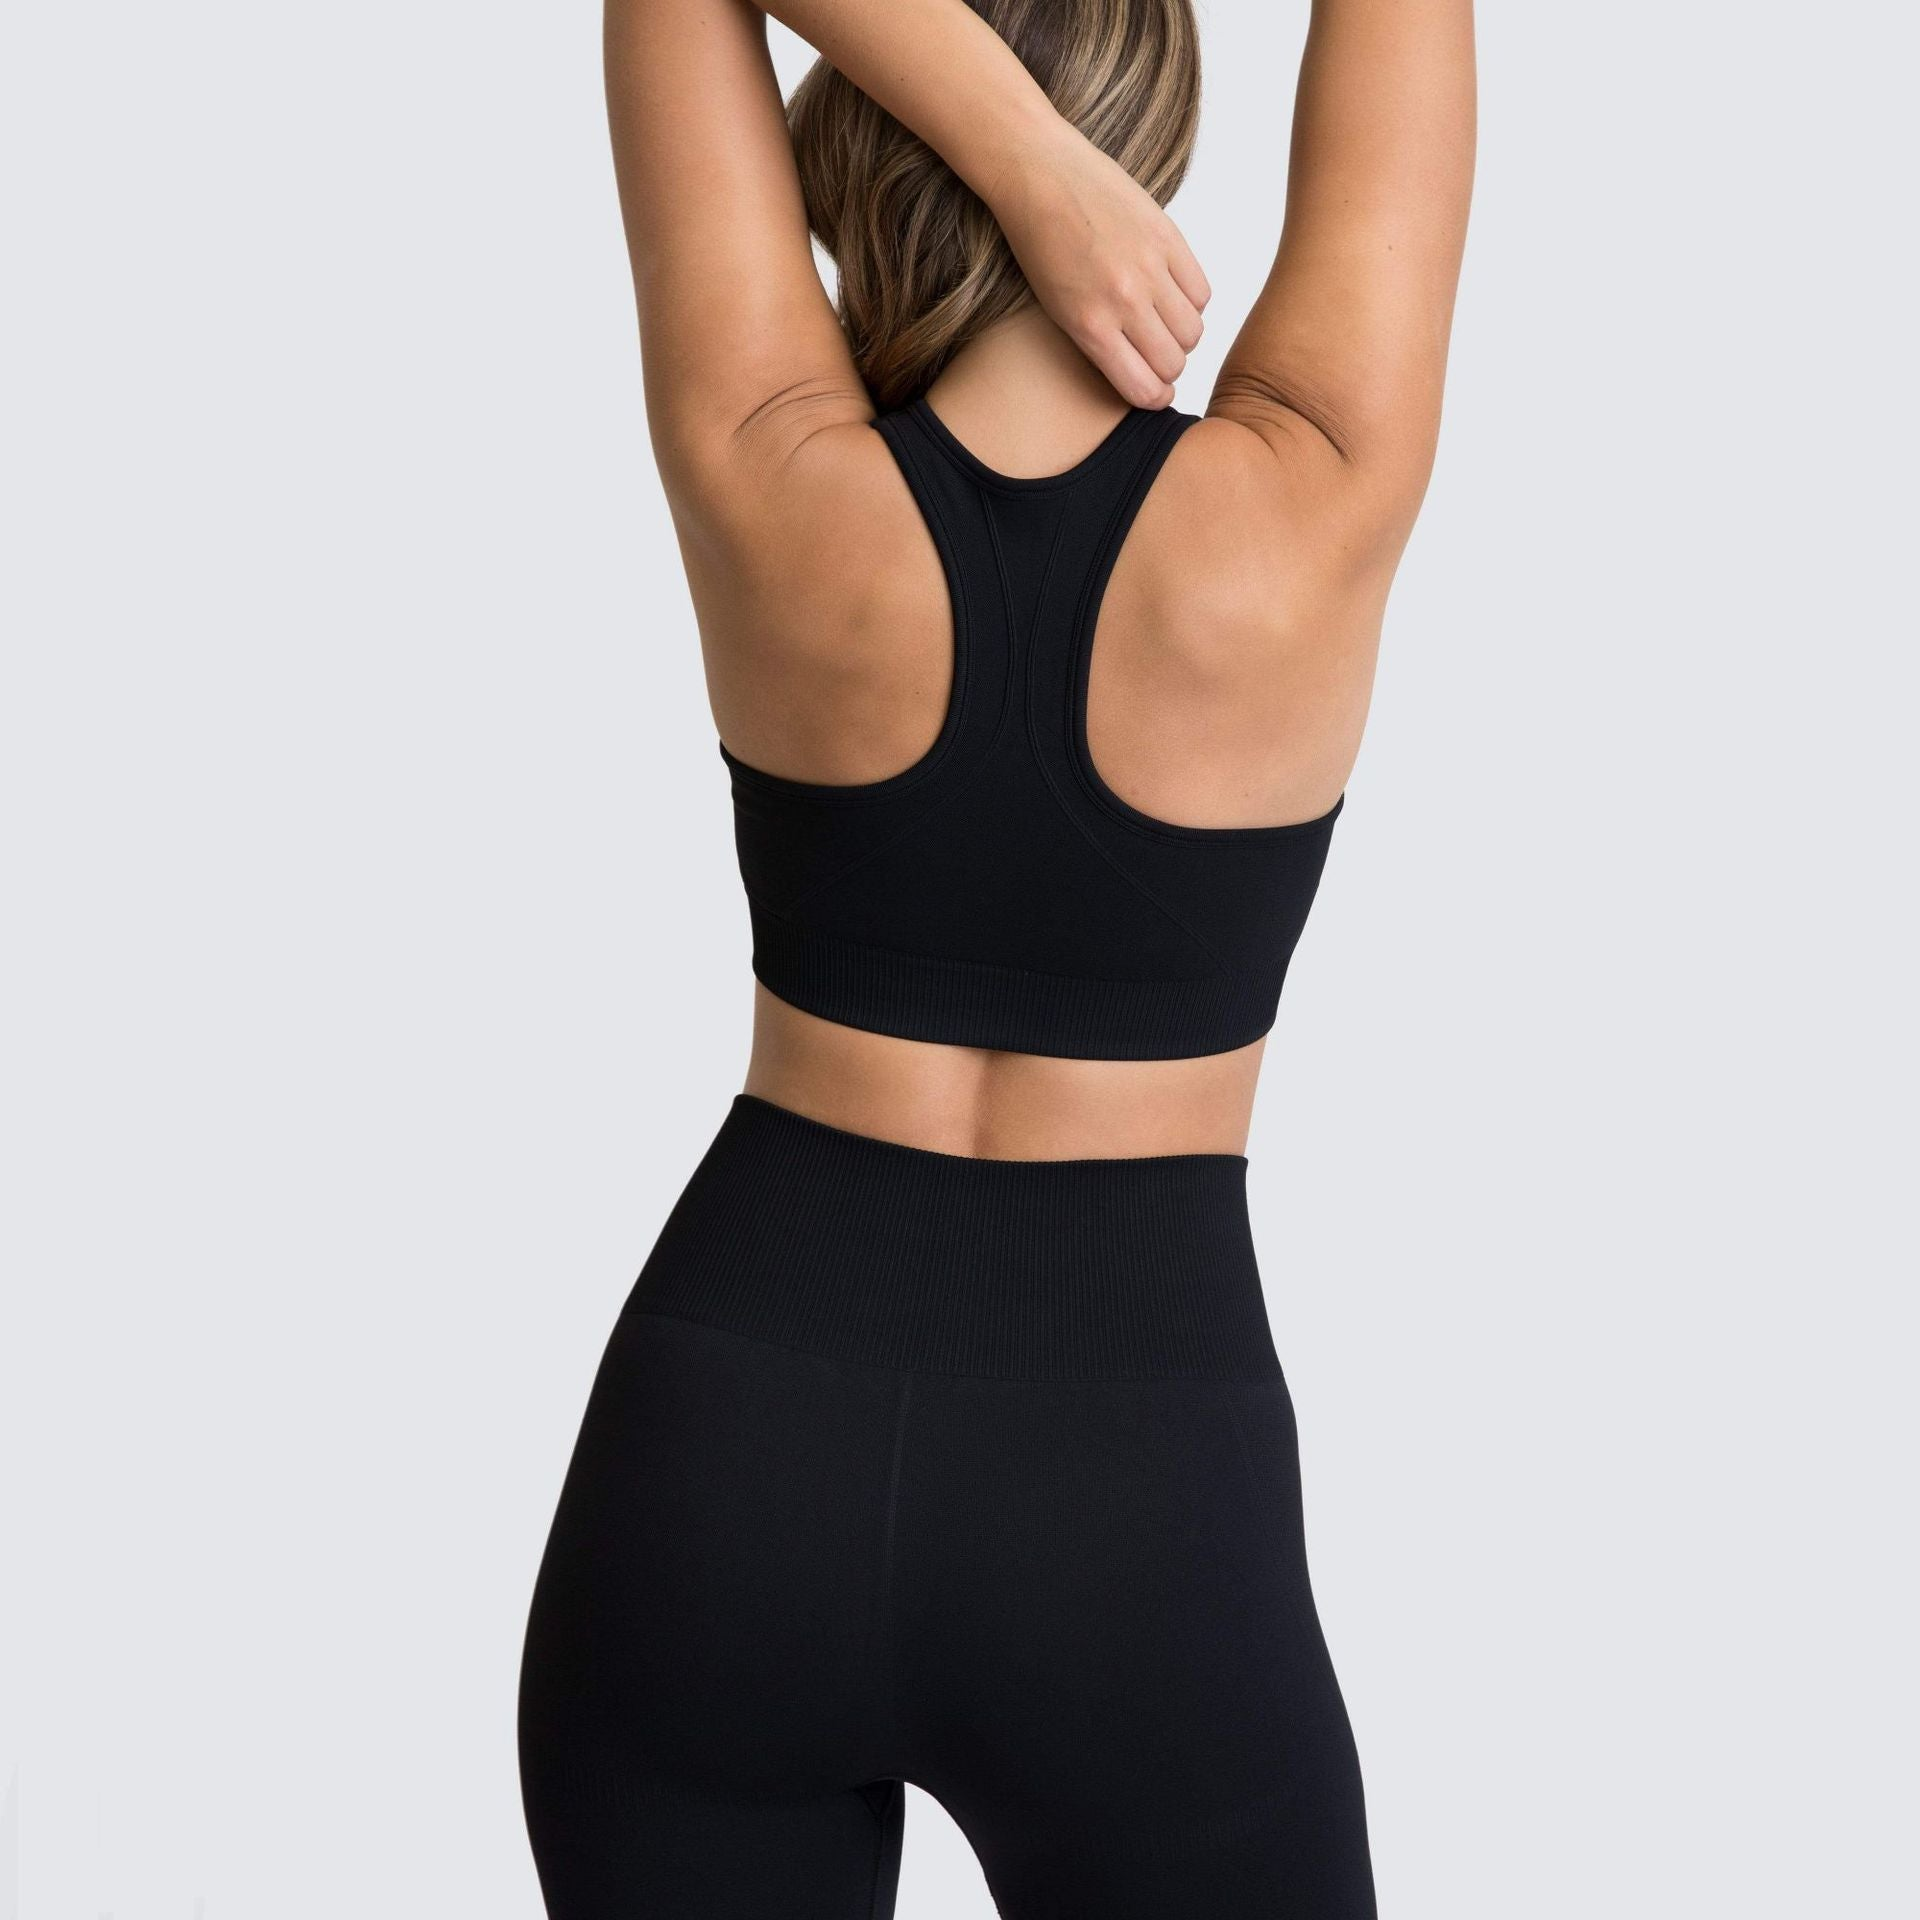 Wome's High Waist Yoga Leggings Black